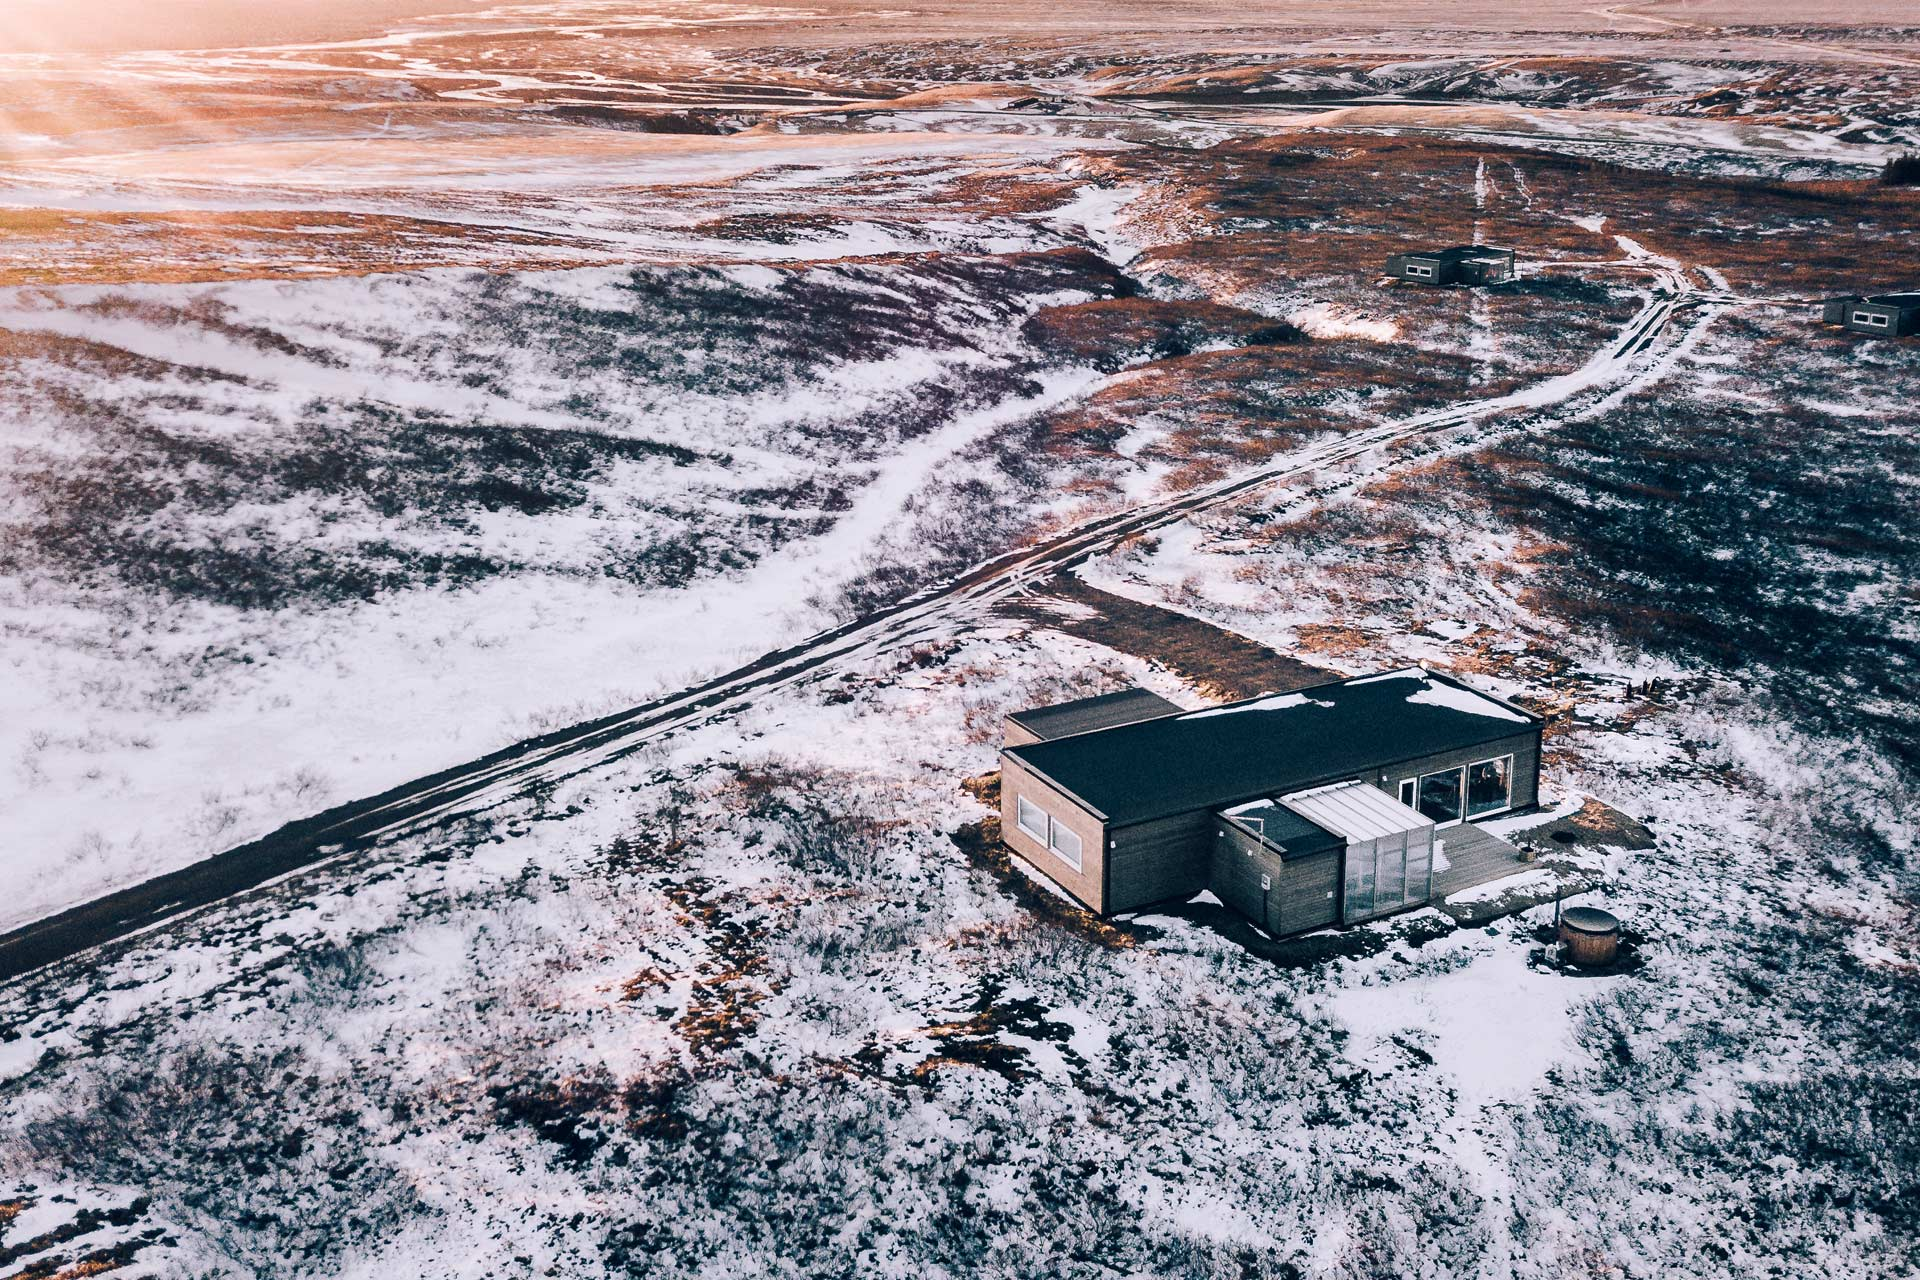 An aerial view of the hrifunes nature park cabins in the south of iceland